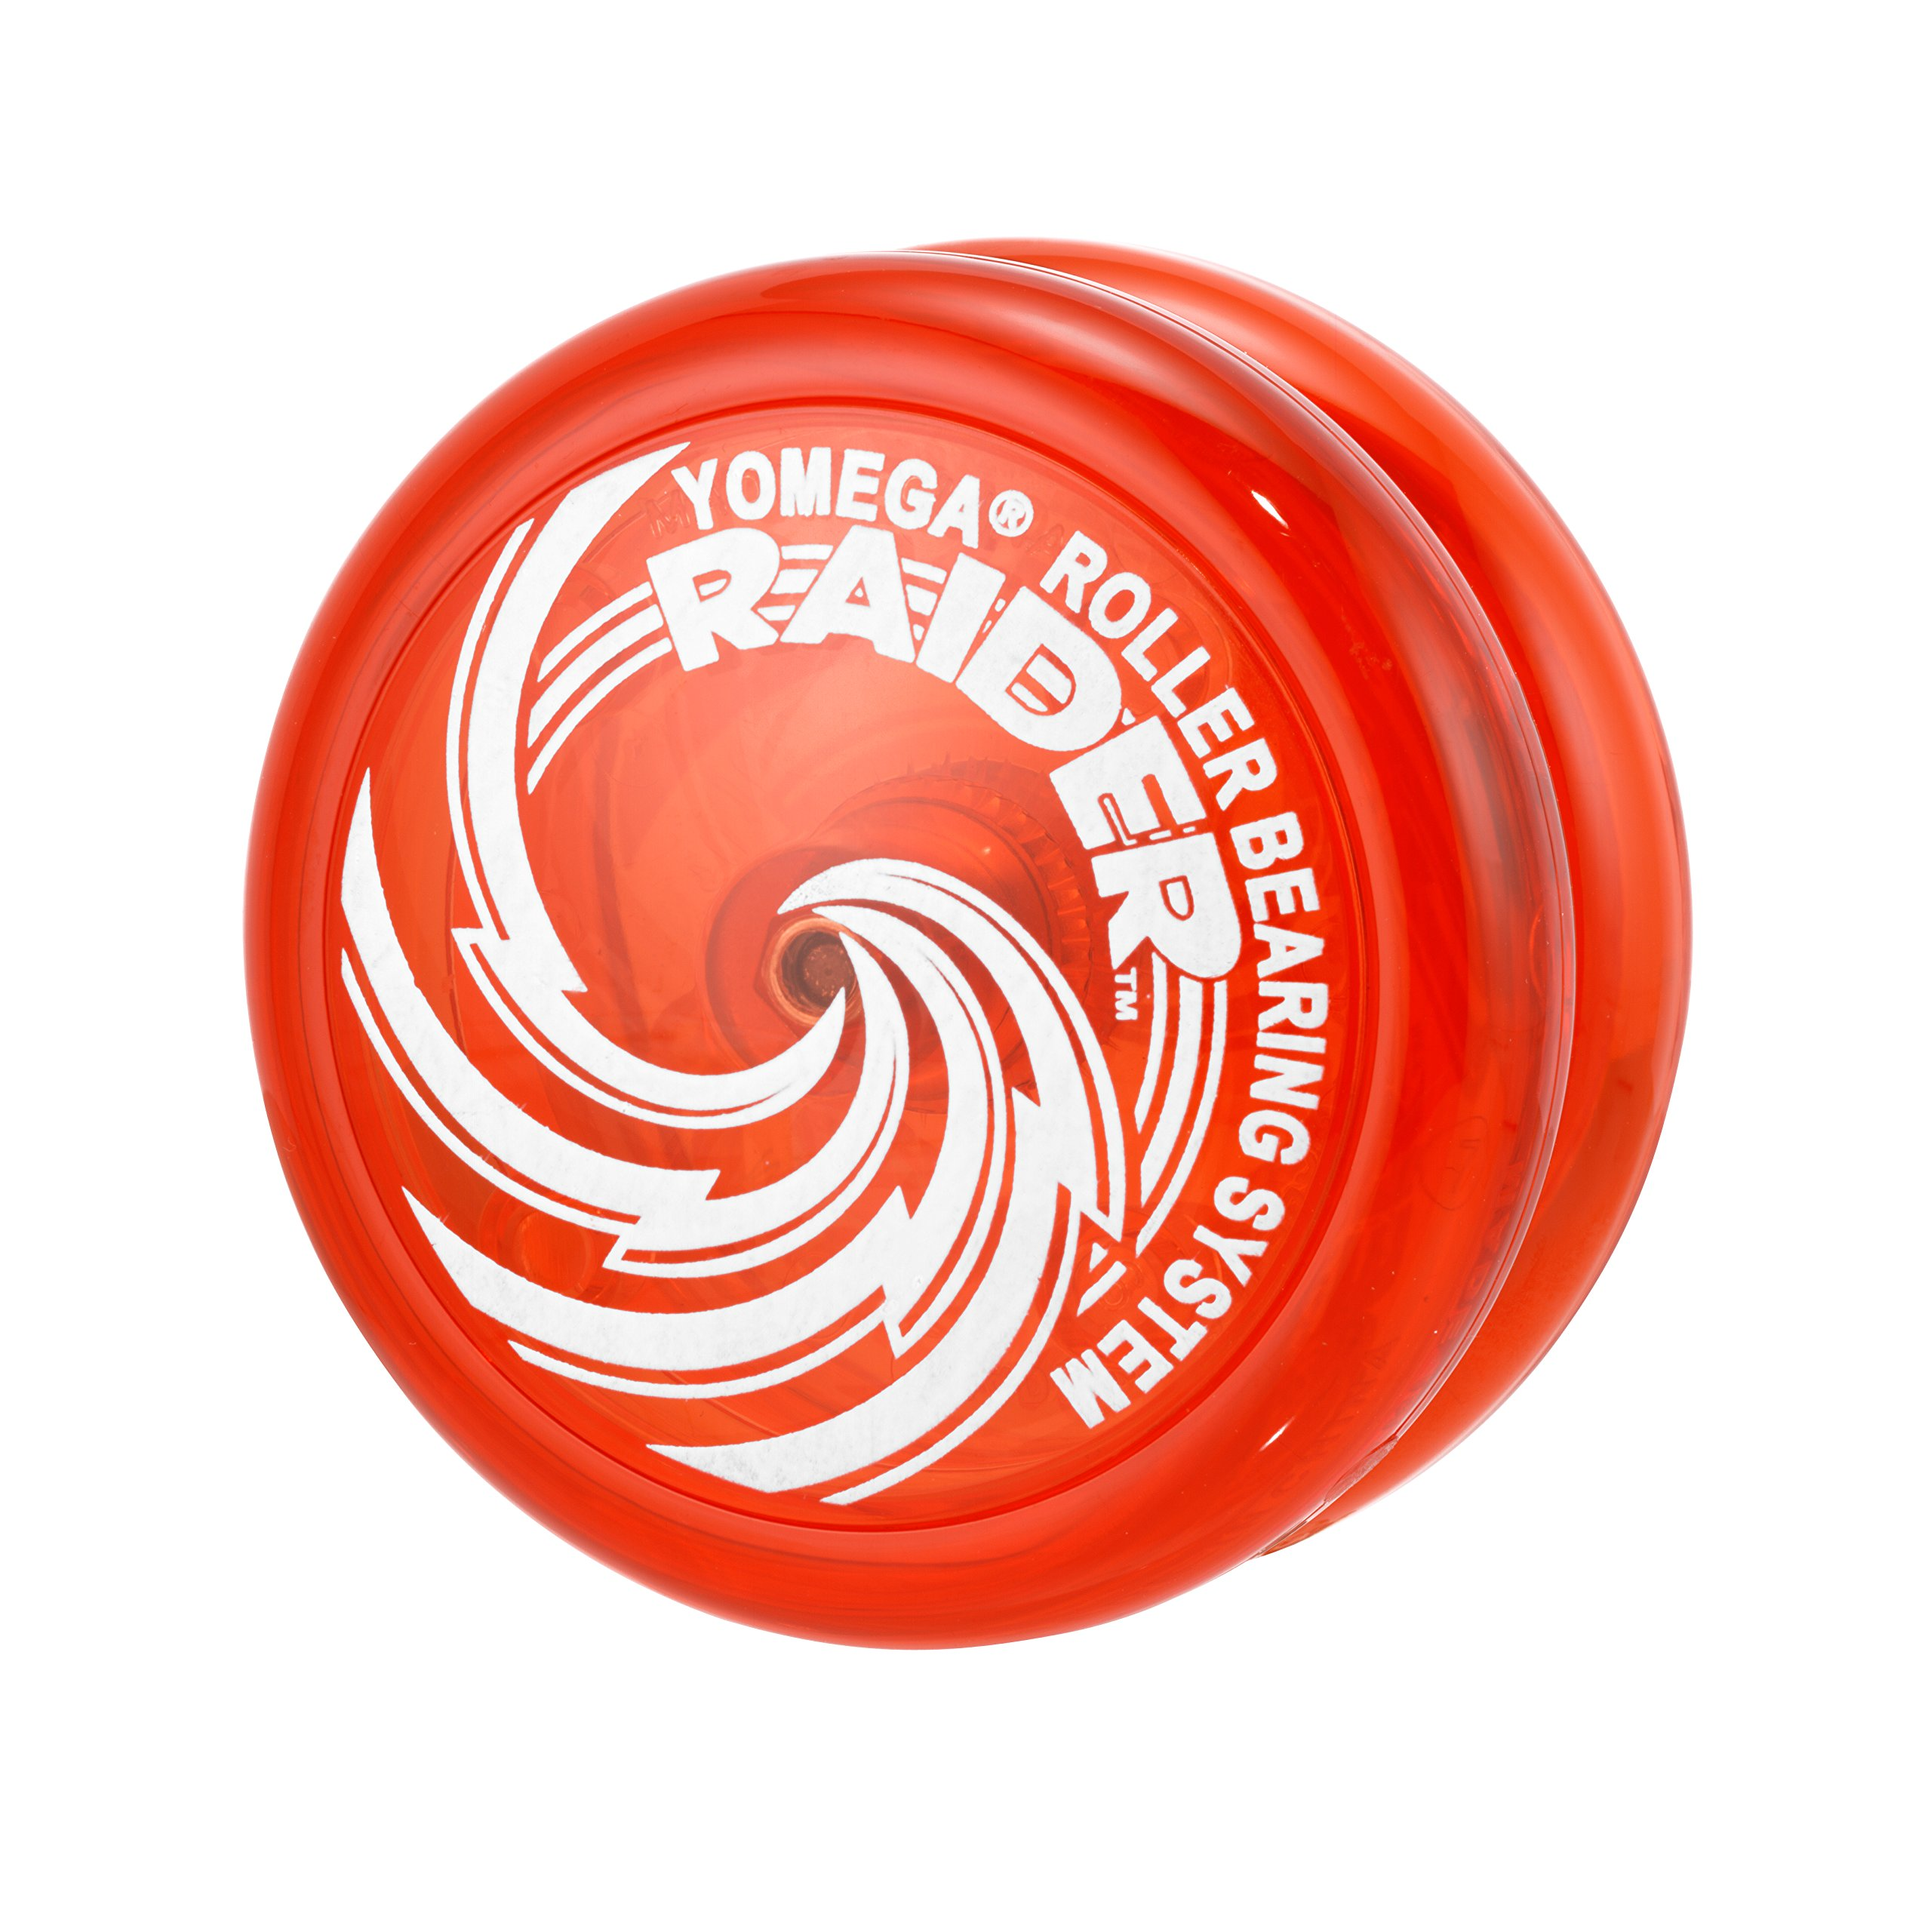 Yomega Raider - Responsive Pro Level Ball Bearing Yoyo, Designed for Advanced String Trick and Looping Play (Color May Vary) by Yomega